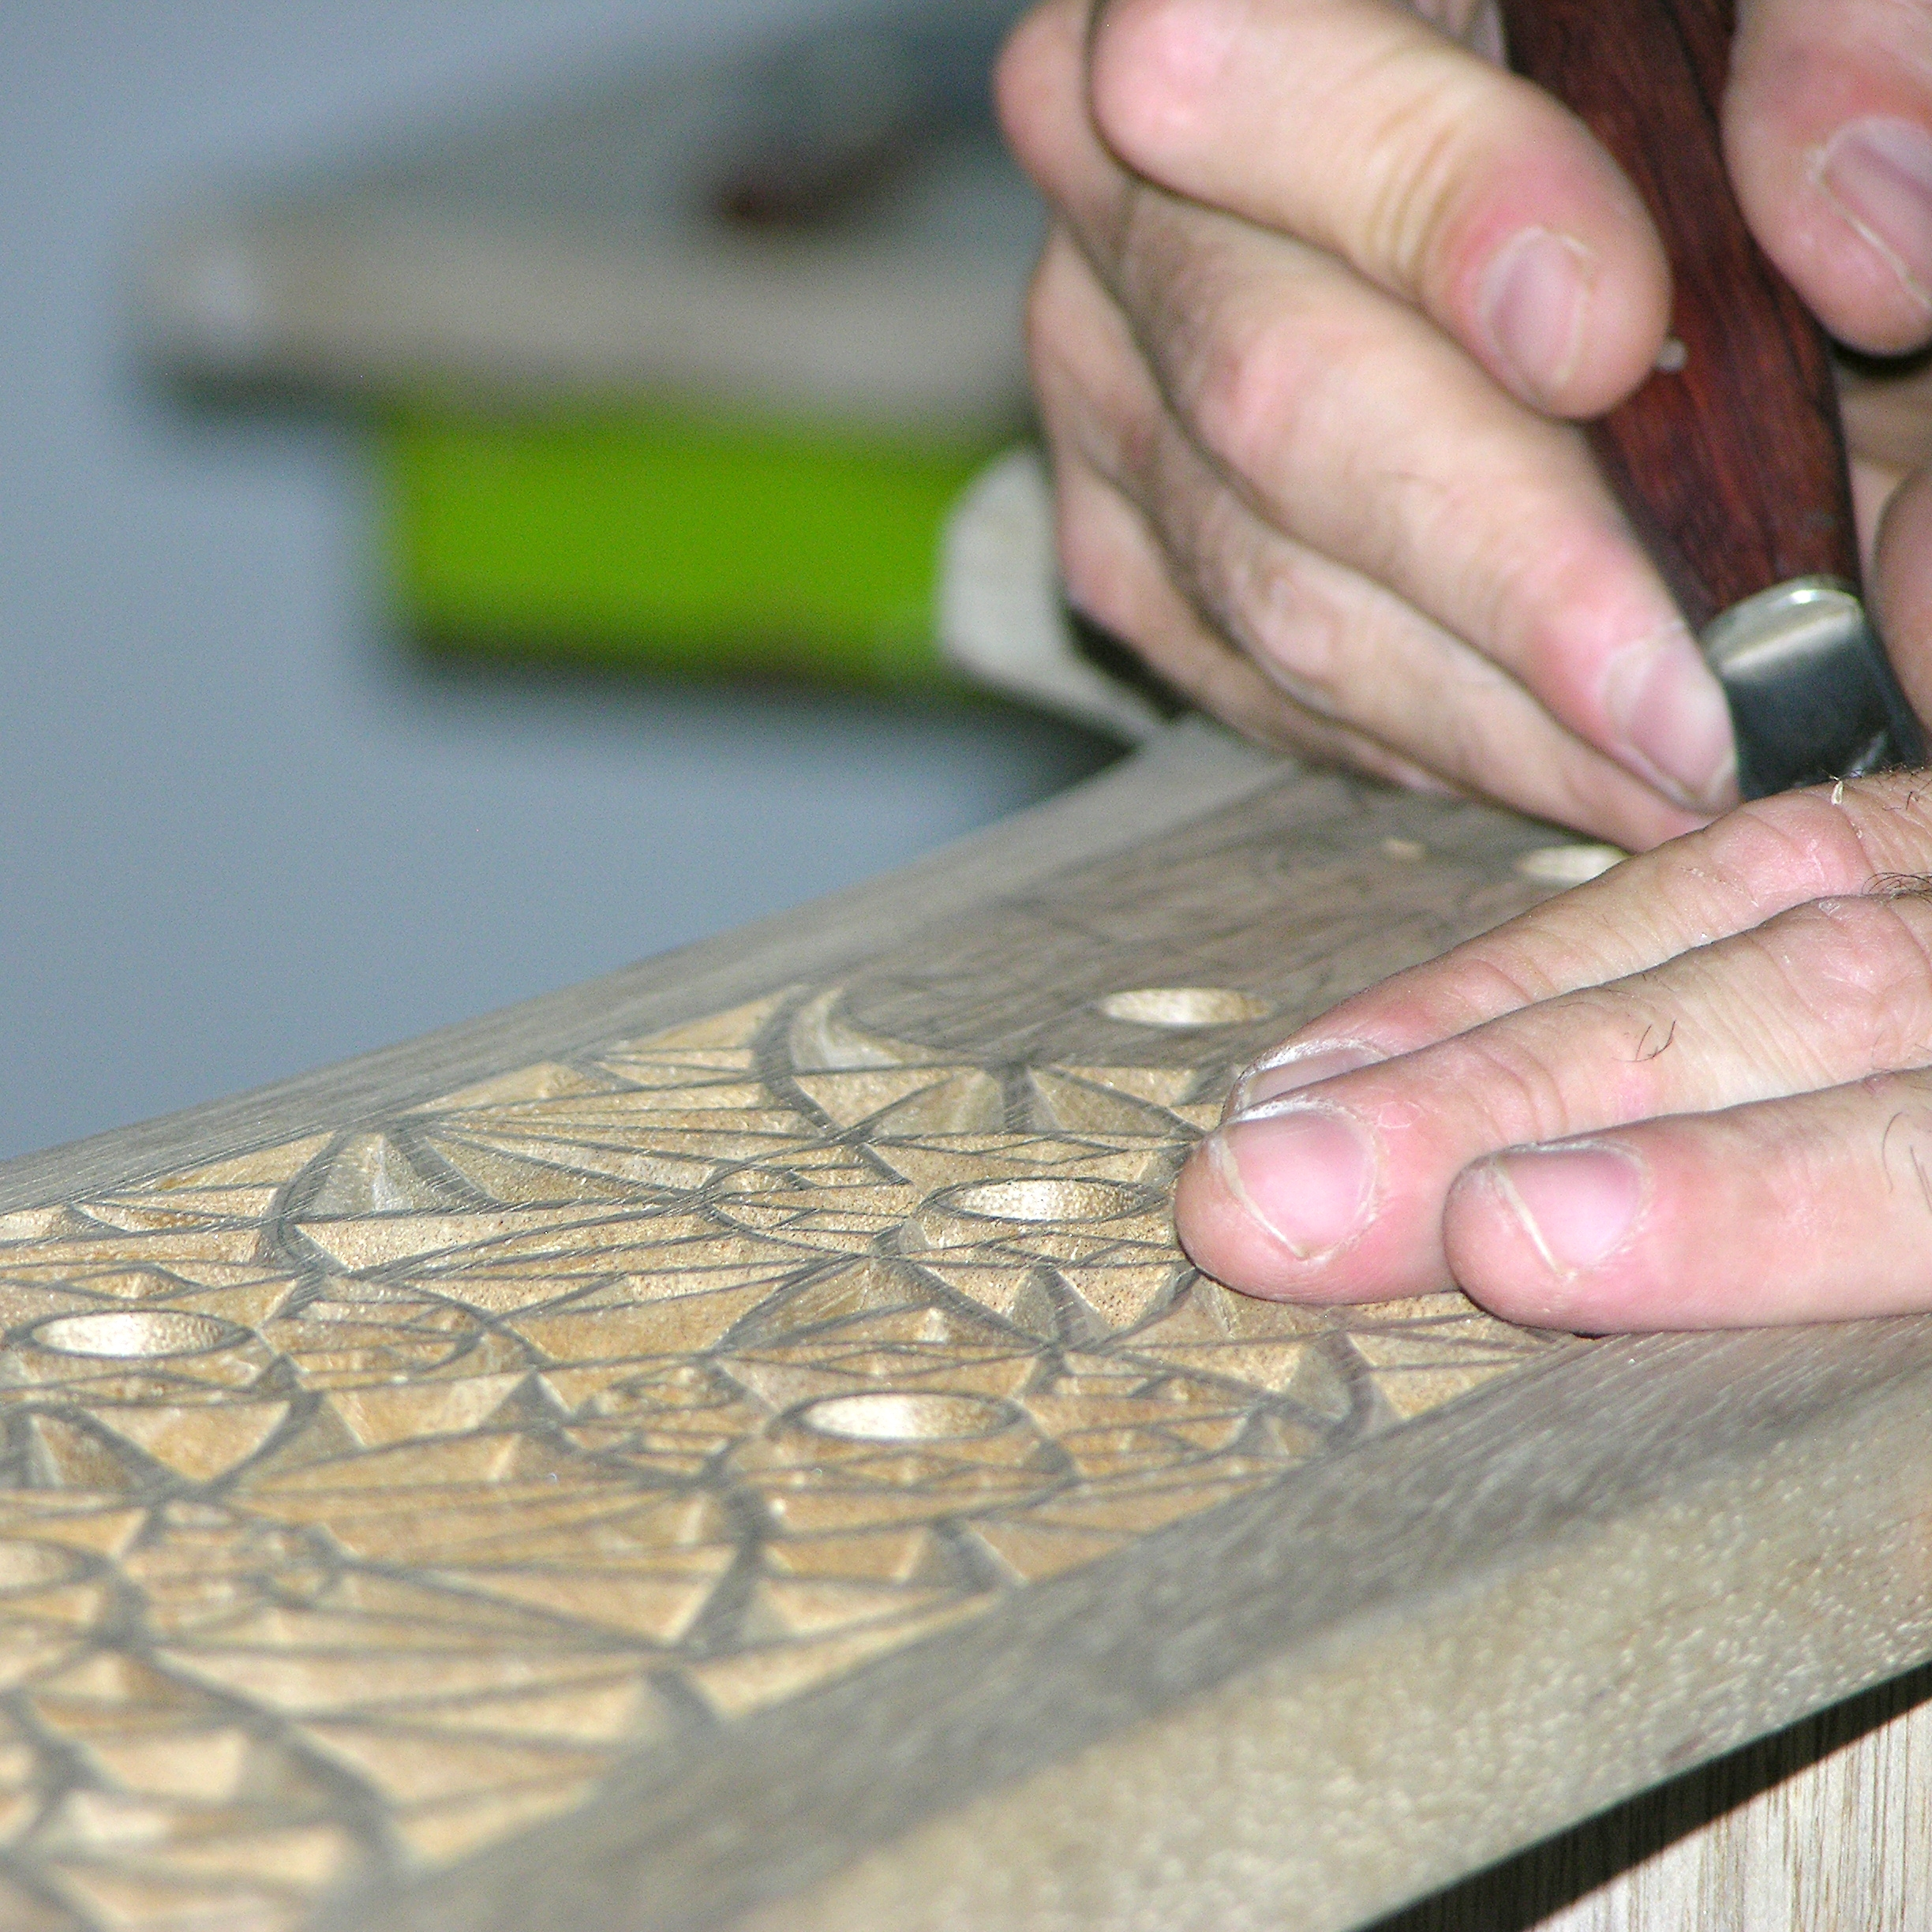 Courses: Hands carve an intricate design into wood